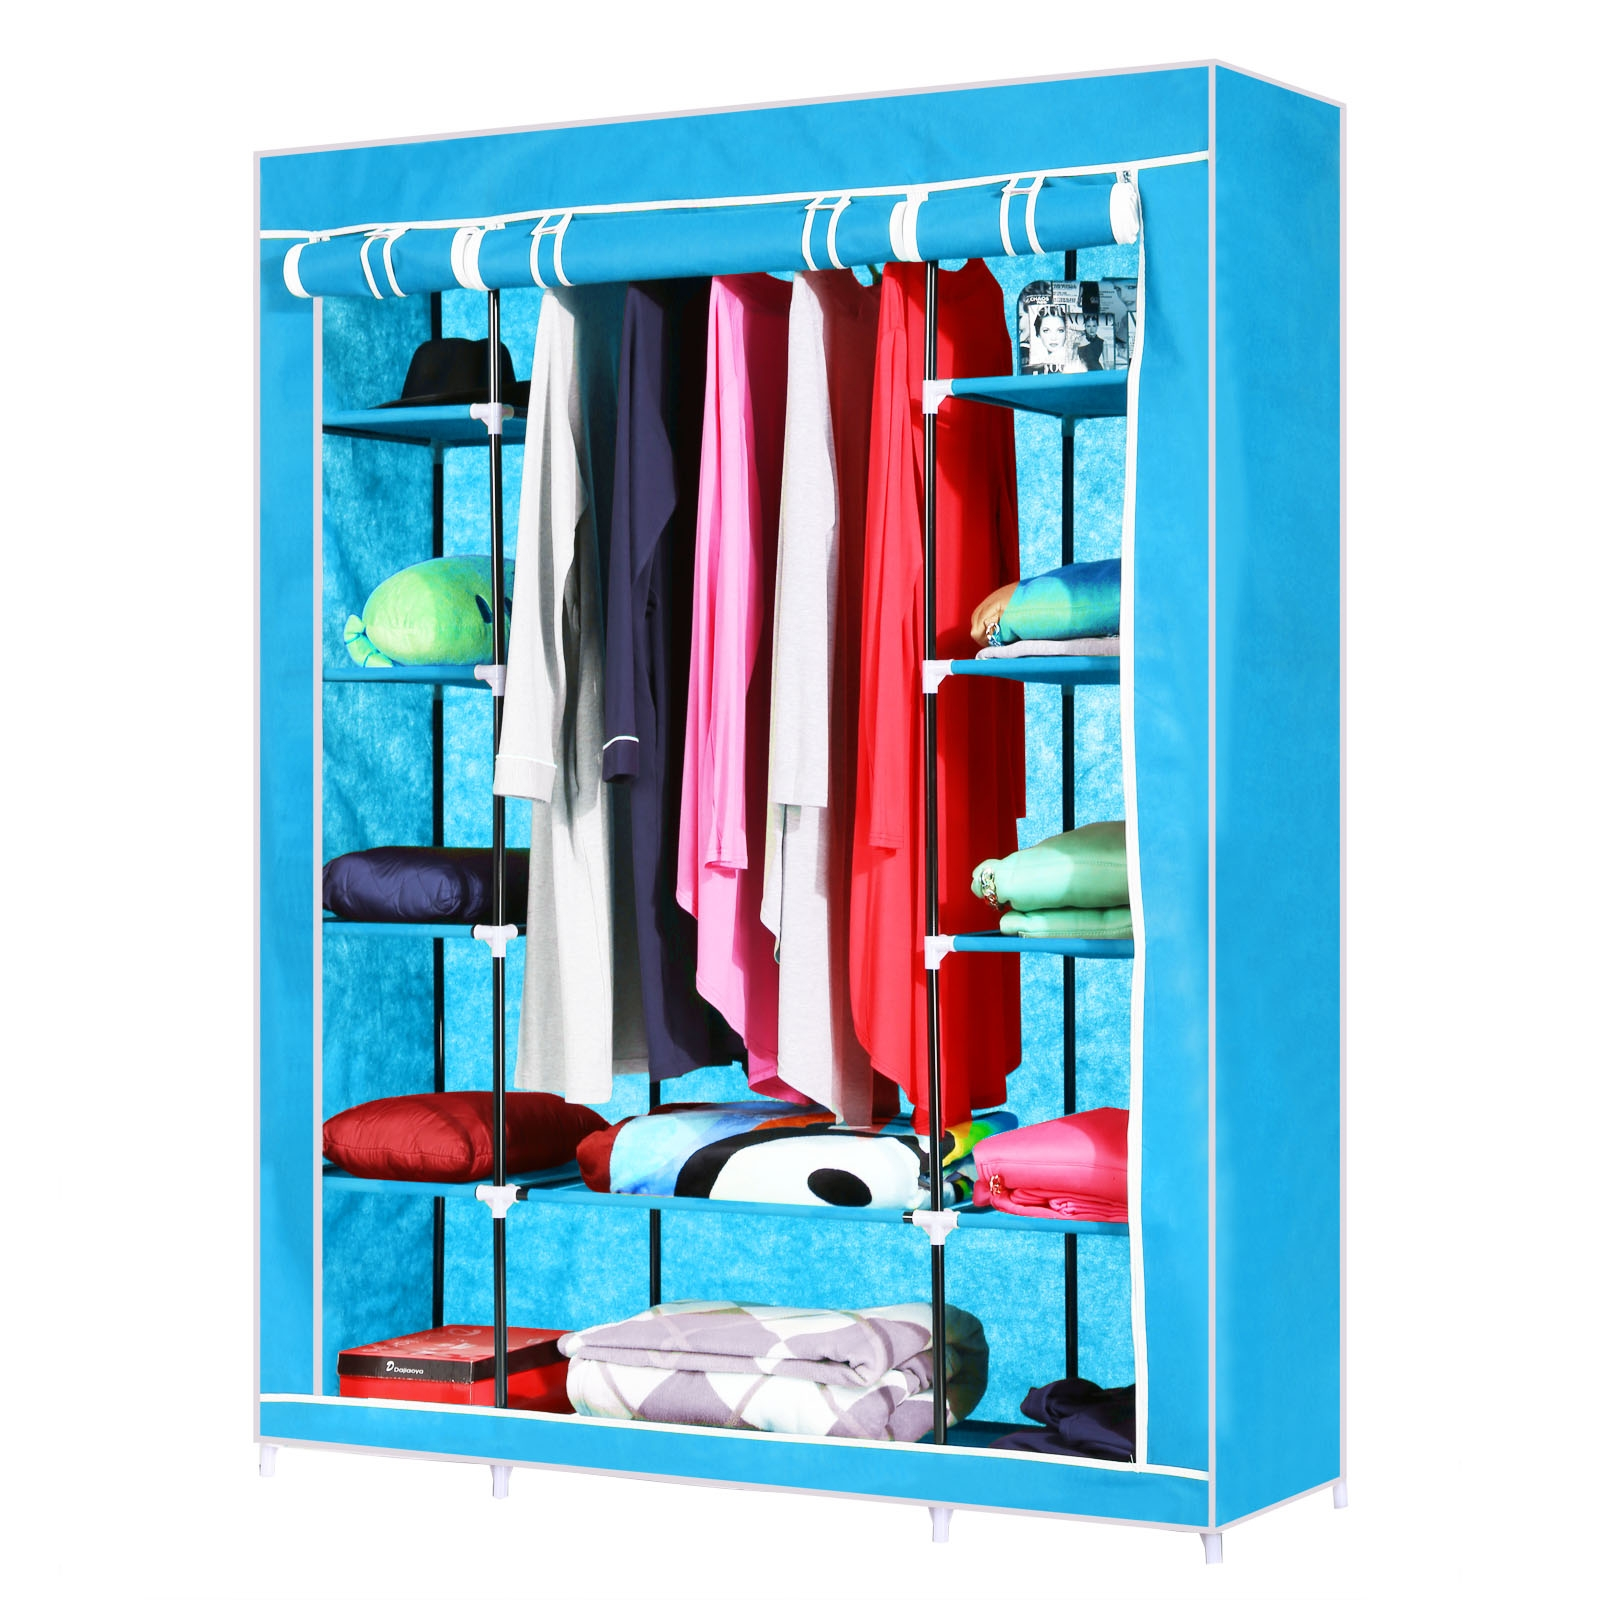 Homdox 52���Portable Closet Storage Organizer Wardrobe Clothes Rack With Shelves